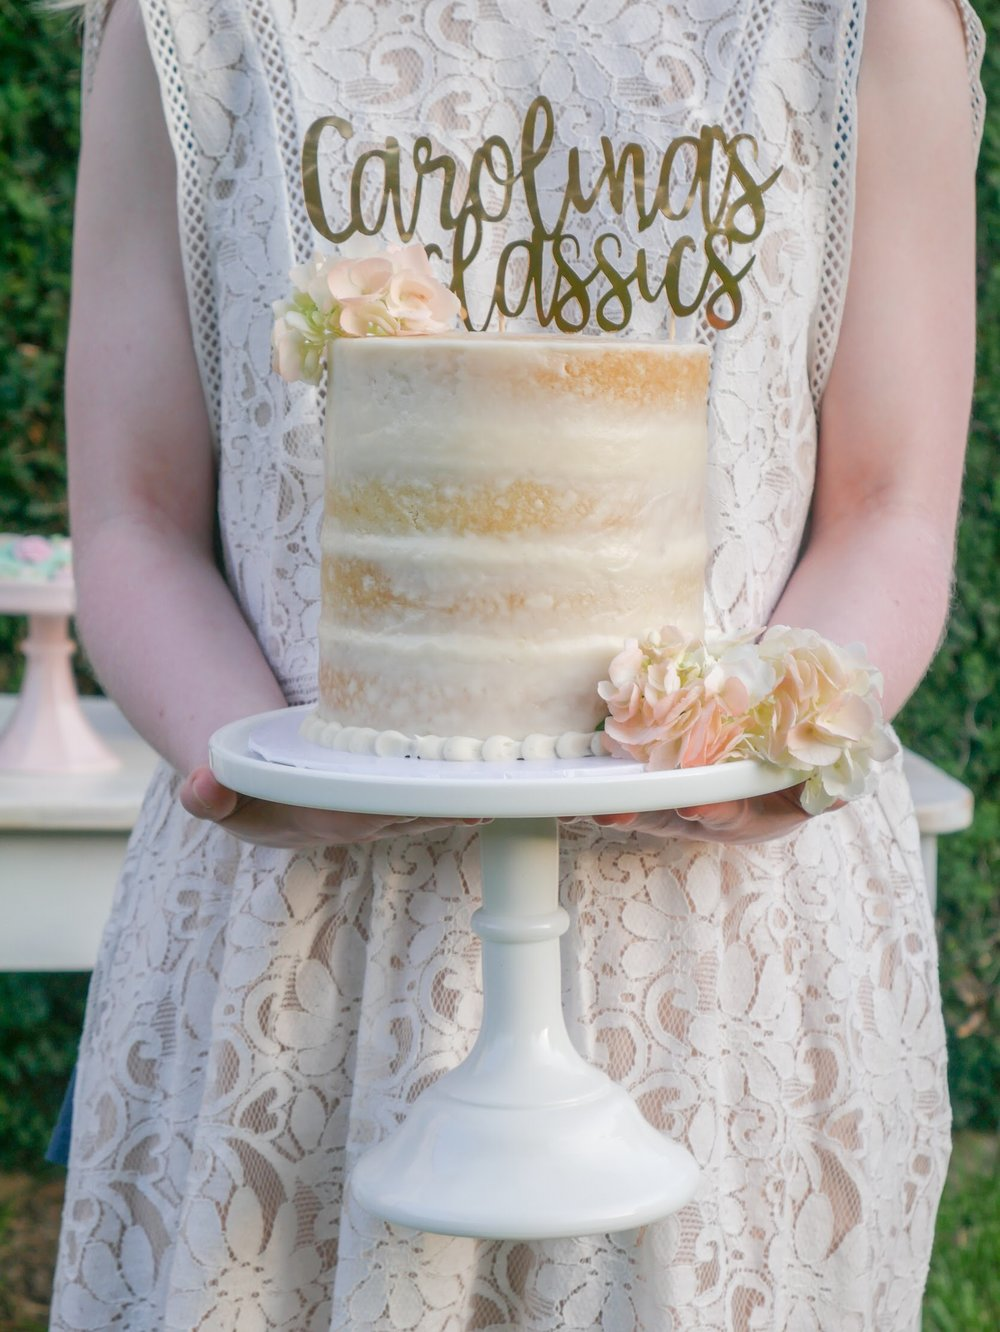 Unfrosted cake and metallic gold topper. Love this style for garden parties and even bridal showers. See more garden party ideas on Mint Event Design www.minteventdesign.com #dessertparty #partytips #partyplanning #partyideas #partycake #caketopper